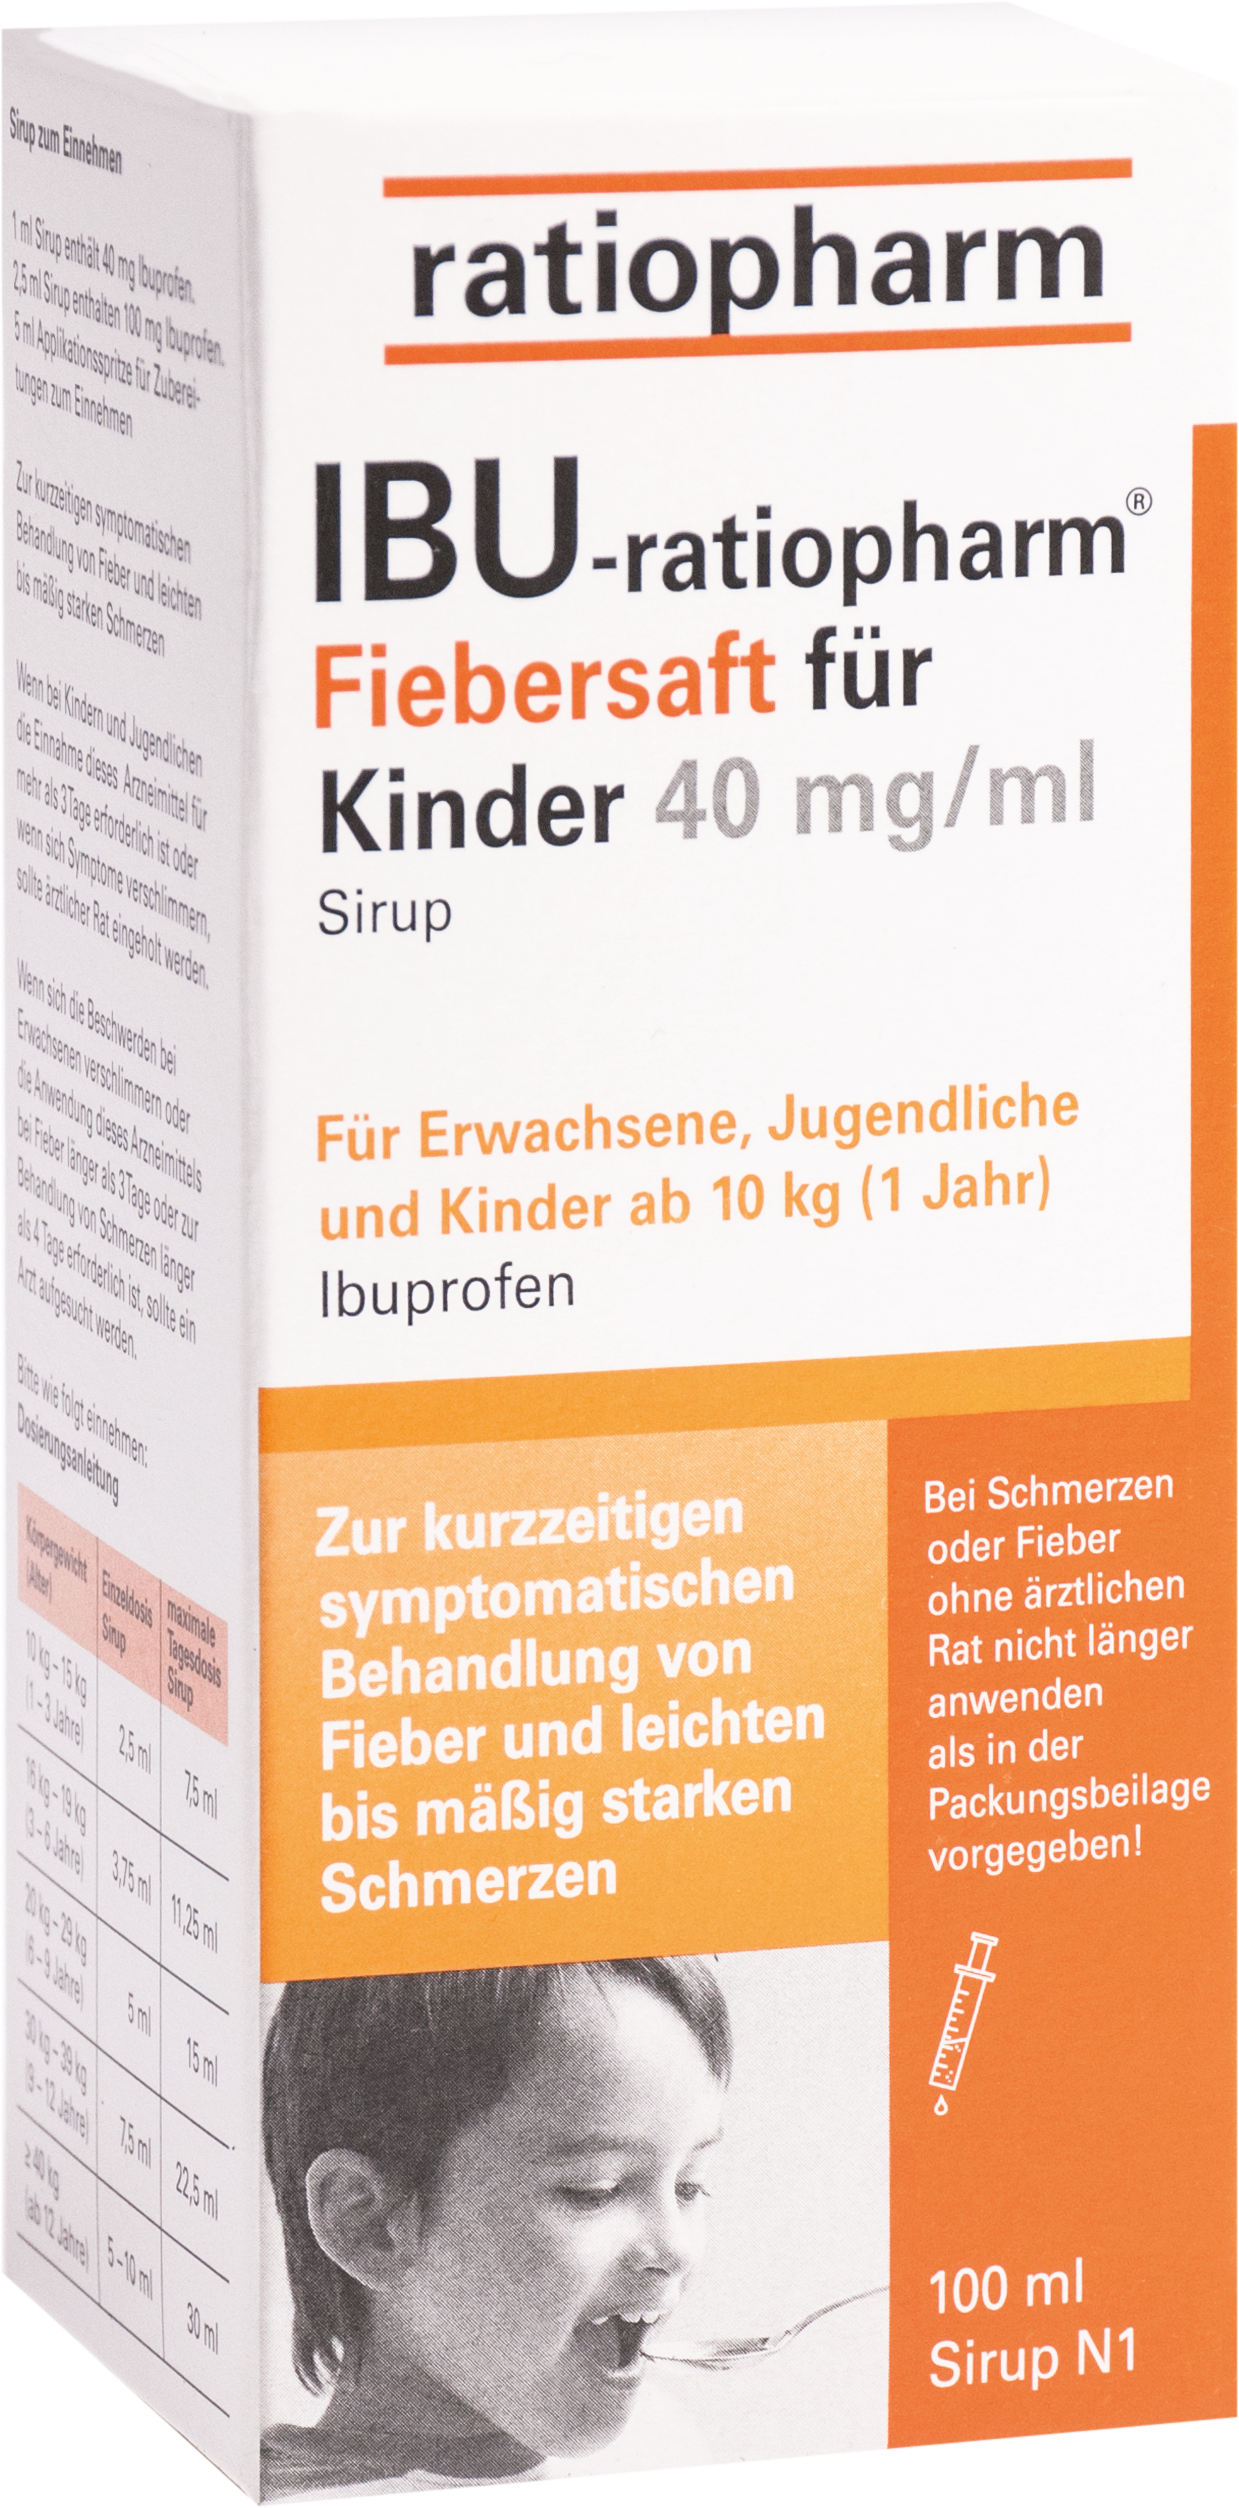 Ibu-ratiopharm Fiebersaft für Kinder 40mg/ml